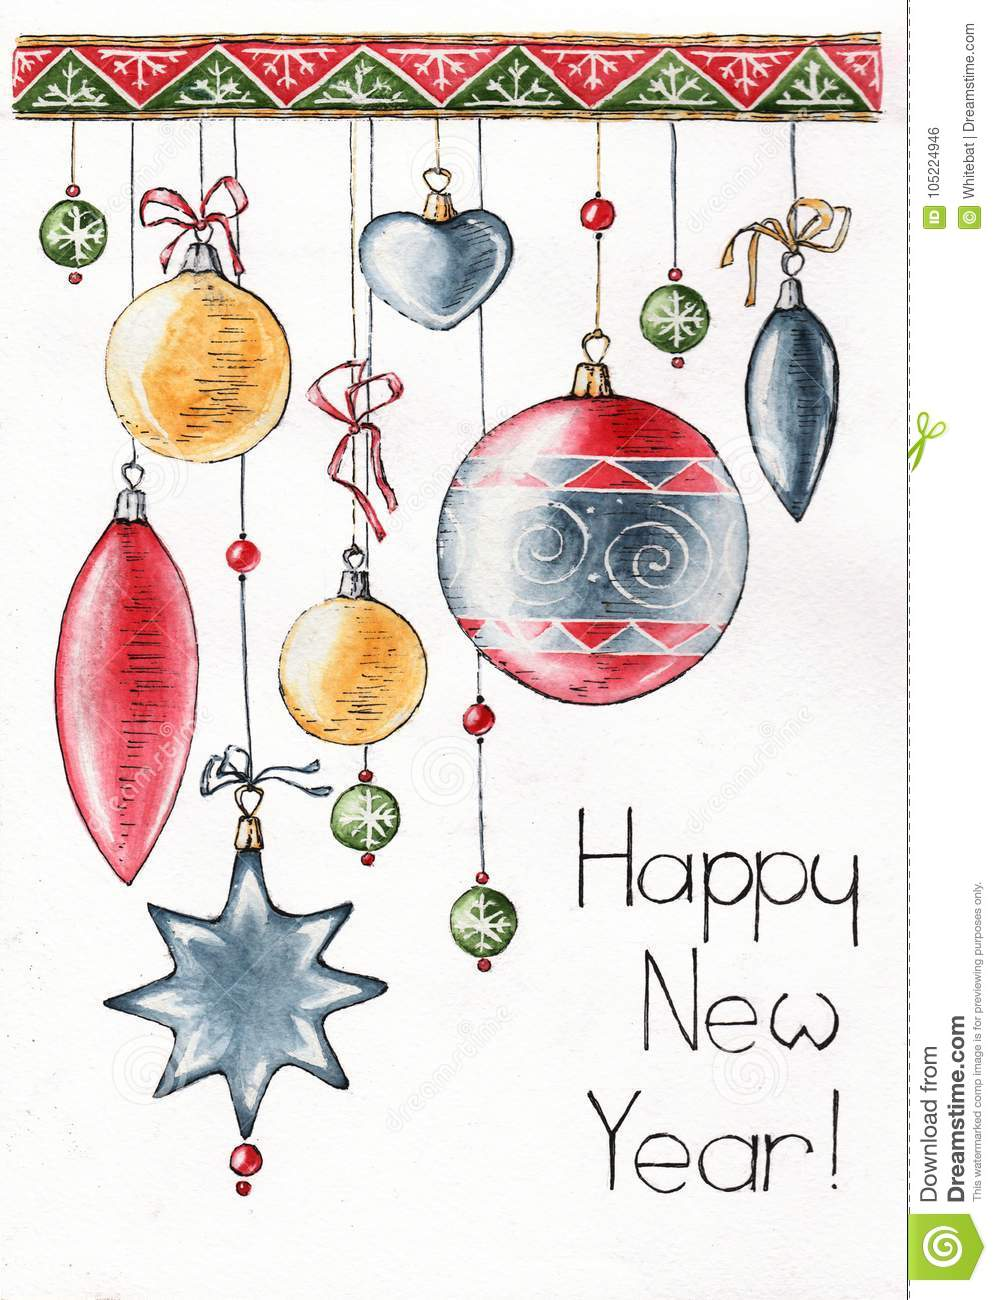 Happy New Year Decorating Watercolor Sketch